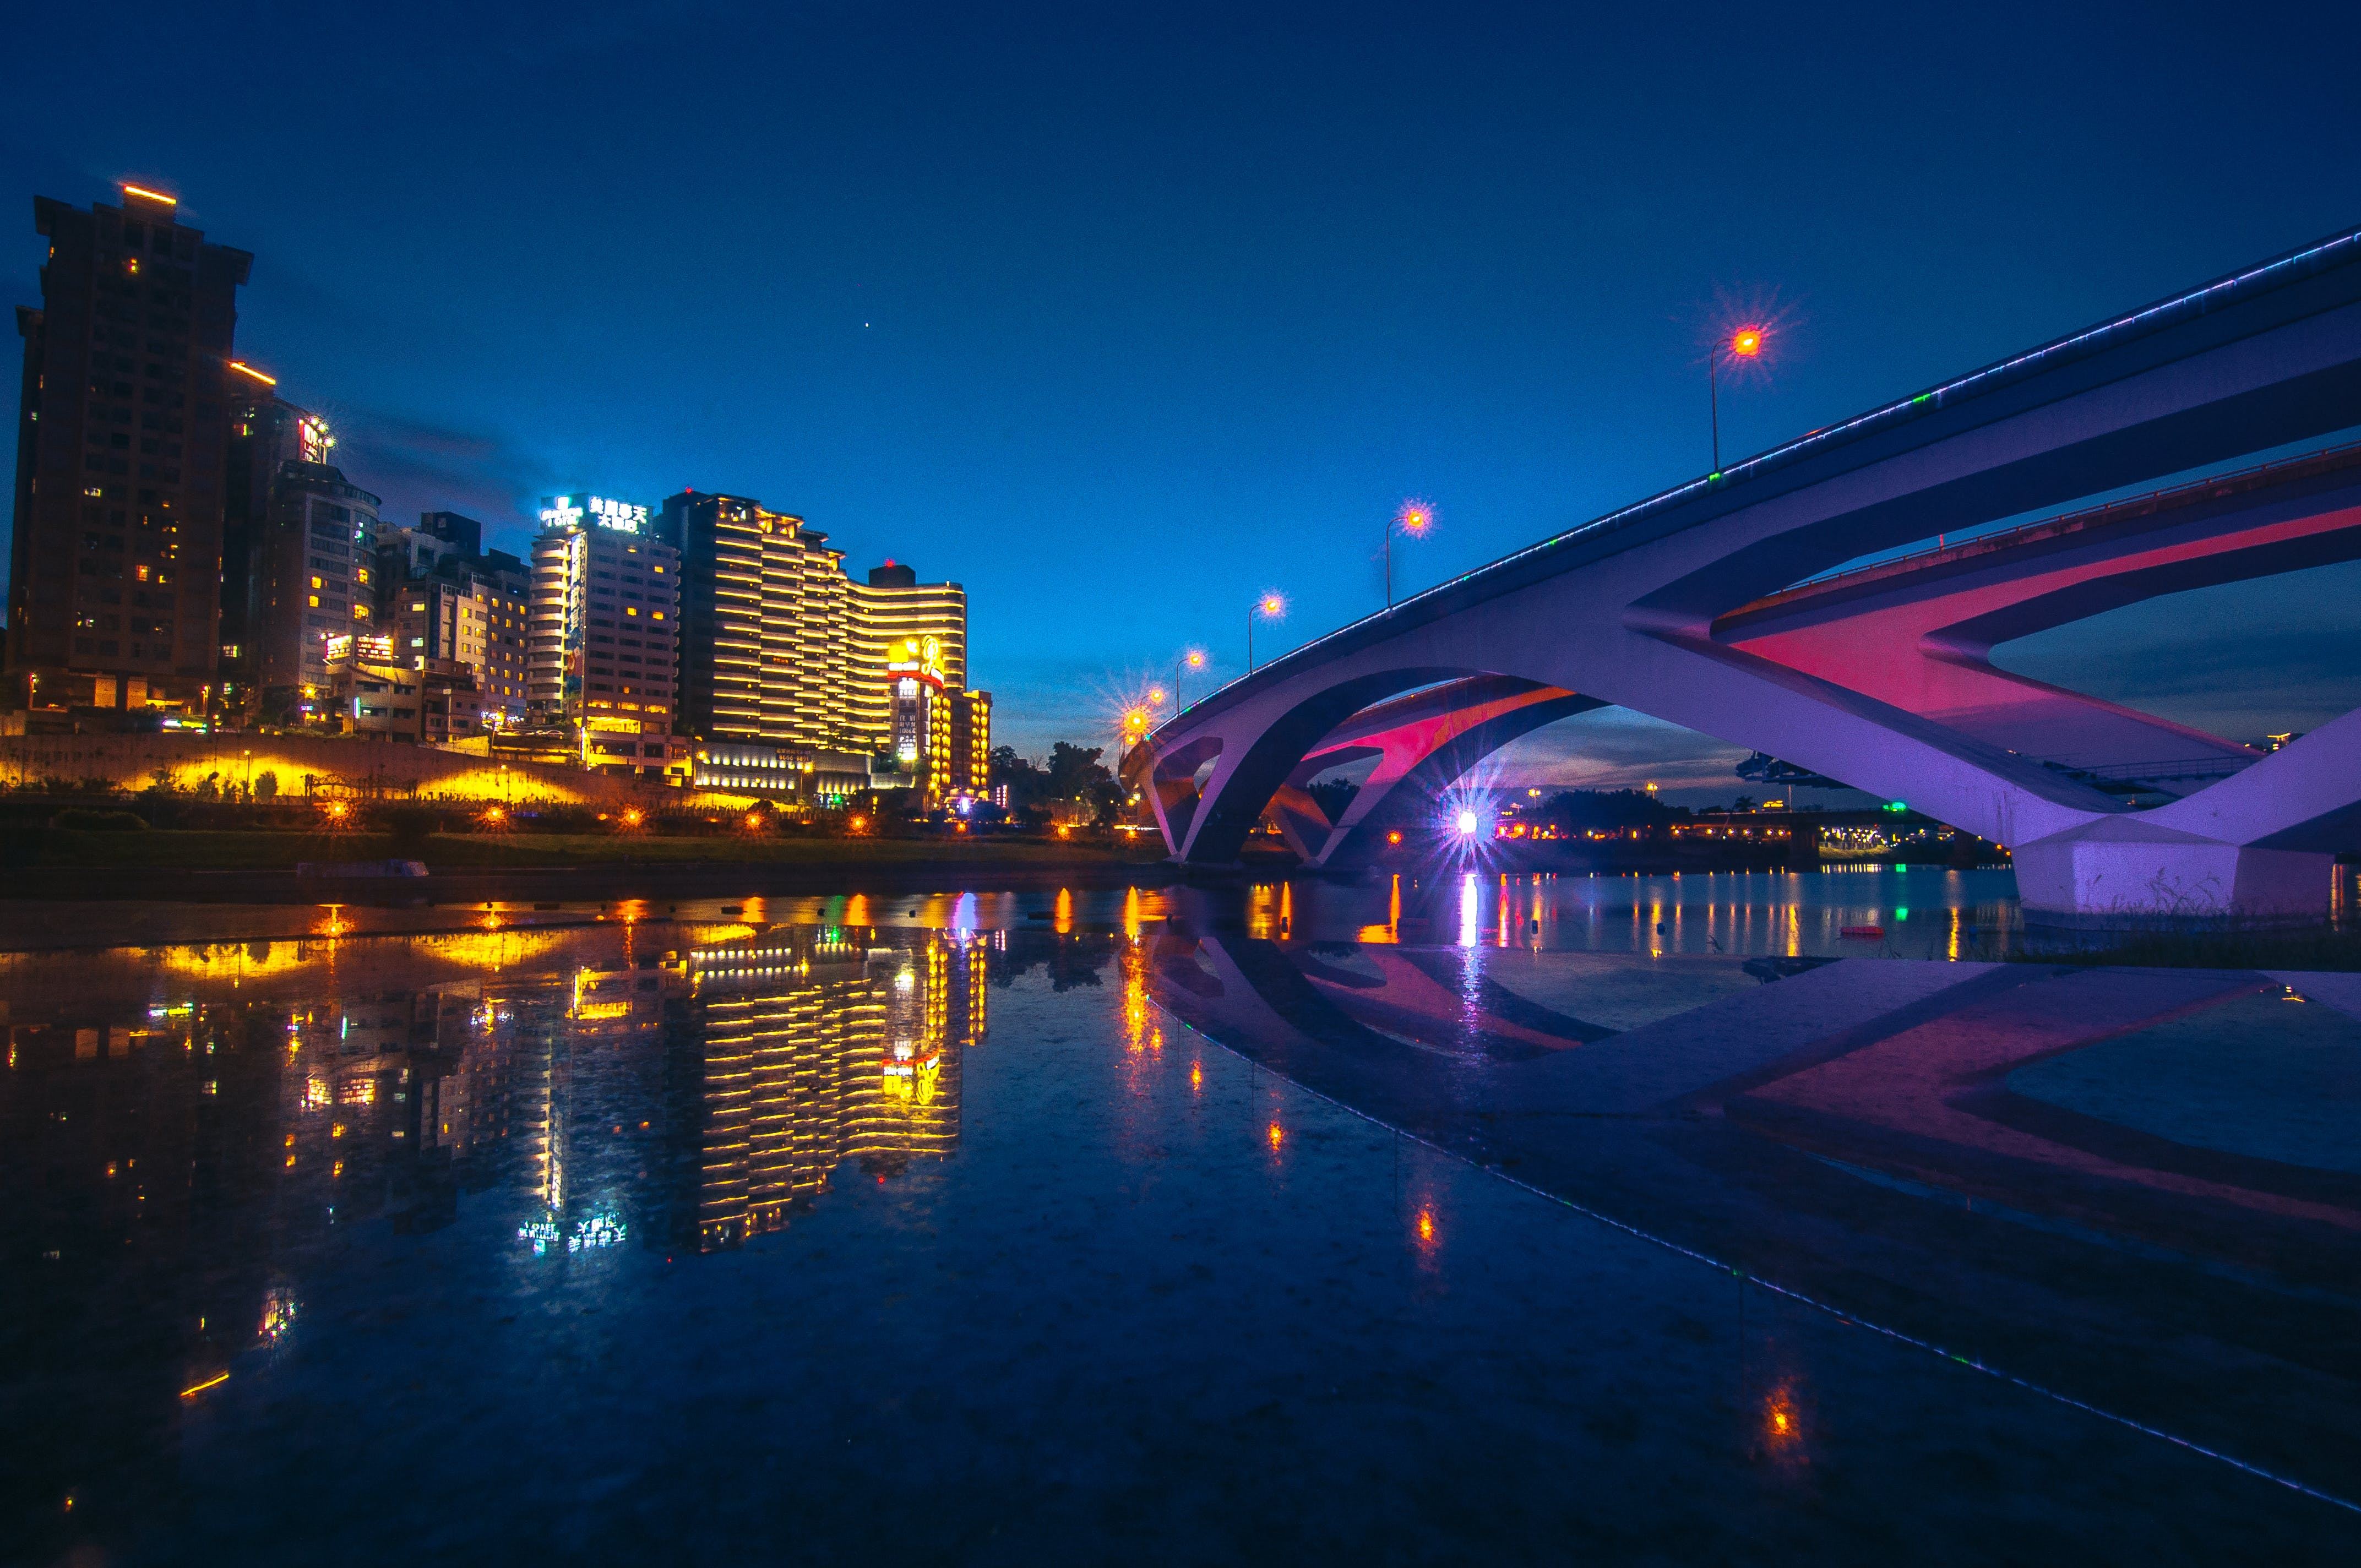 Time-lapse Photography Of Buildings And Bridge